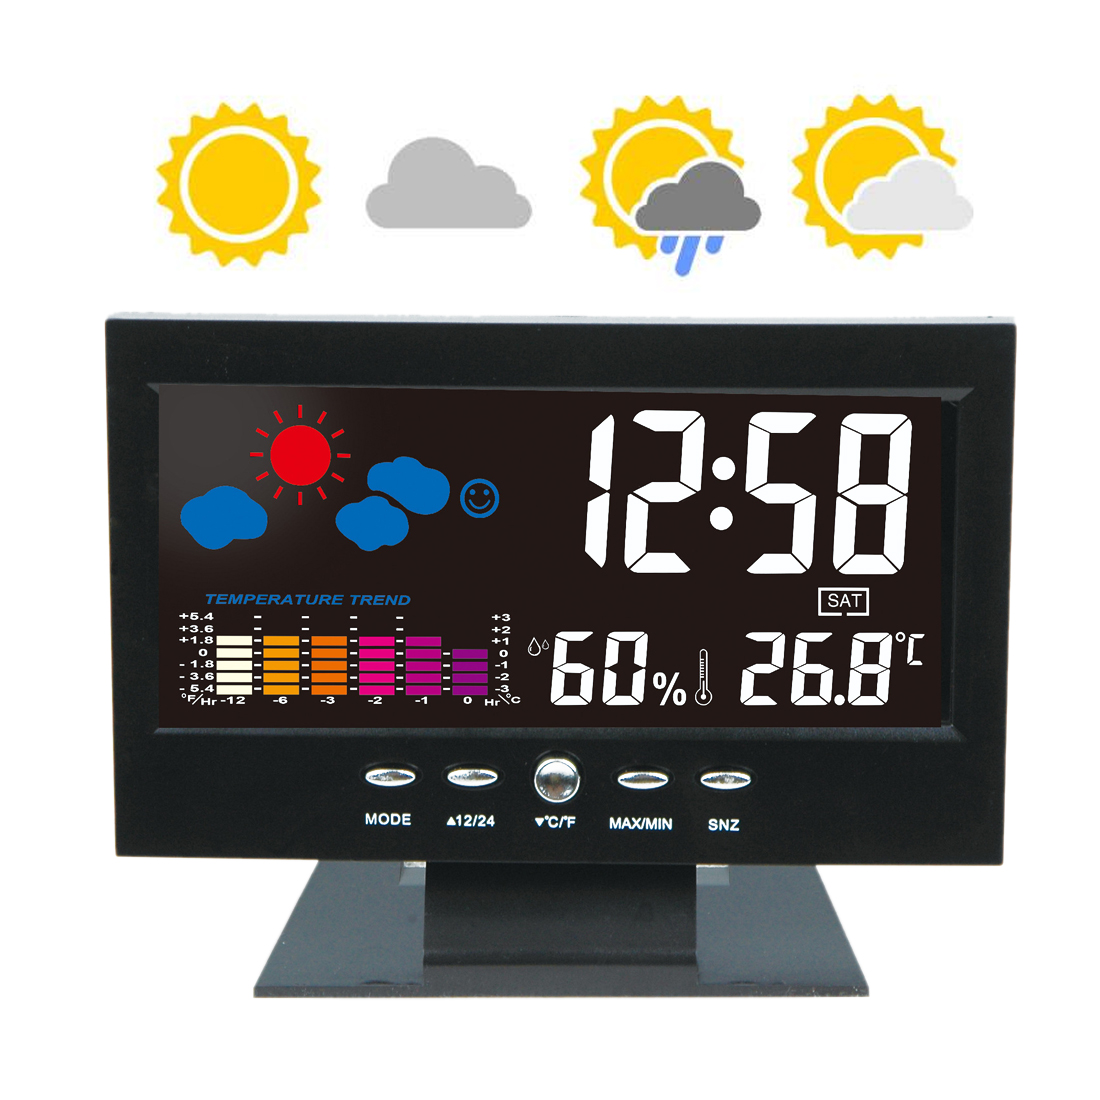 Weather station Alarm Clock temperature gauge Colorful LCD Calendar Vioce-activated Backlight Digital Thermometer Hygrometer digital lcd thermometer projection weather station temperature calendar display dual alarm clock usb charging function